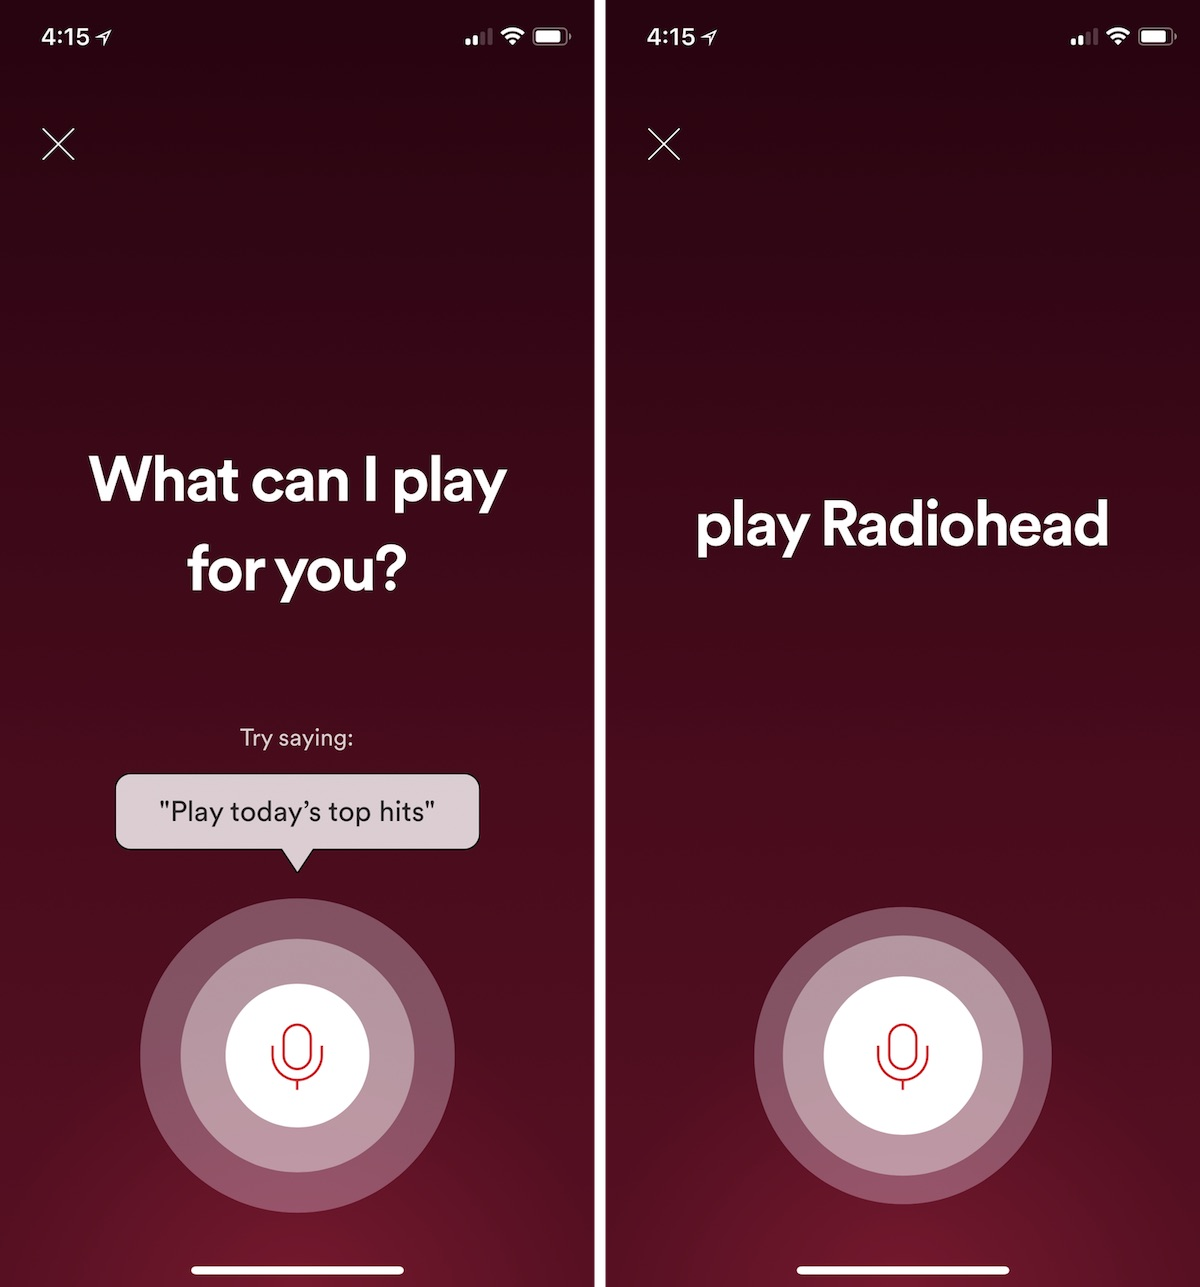 spotify testing voice control features in ios app